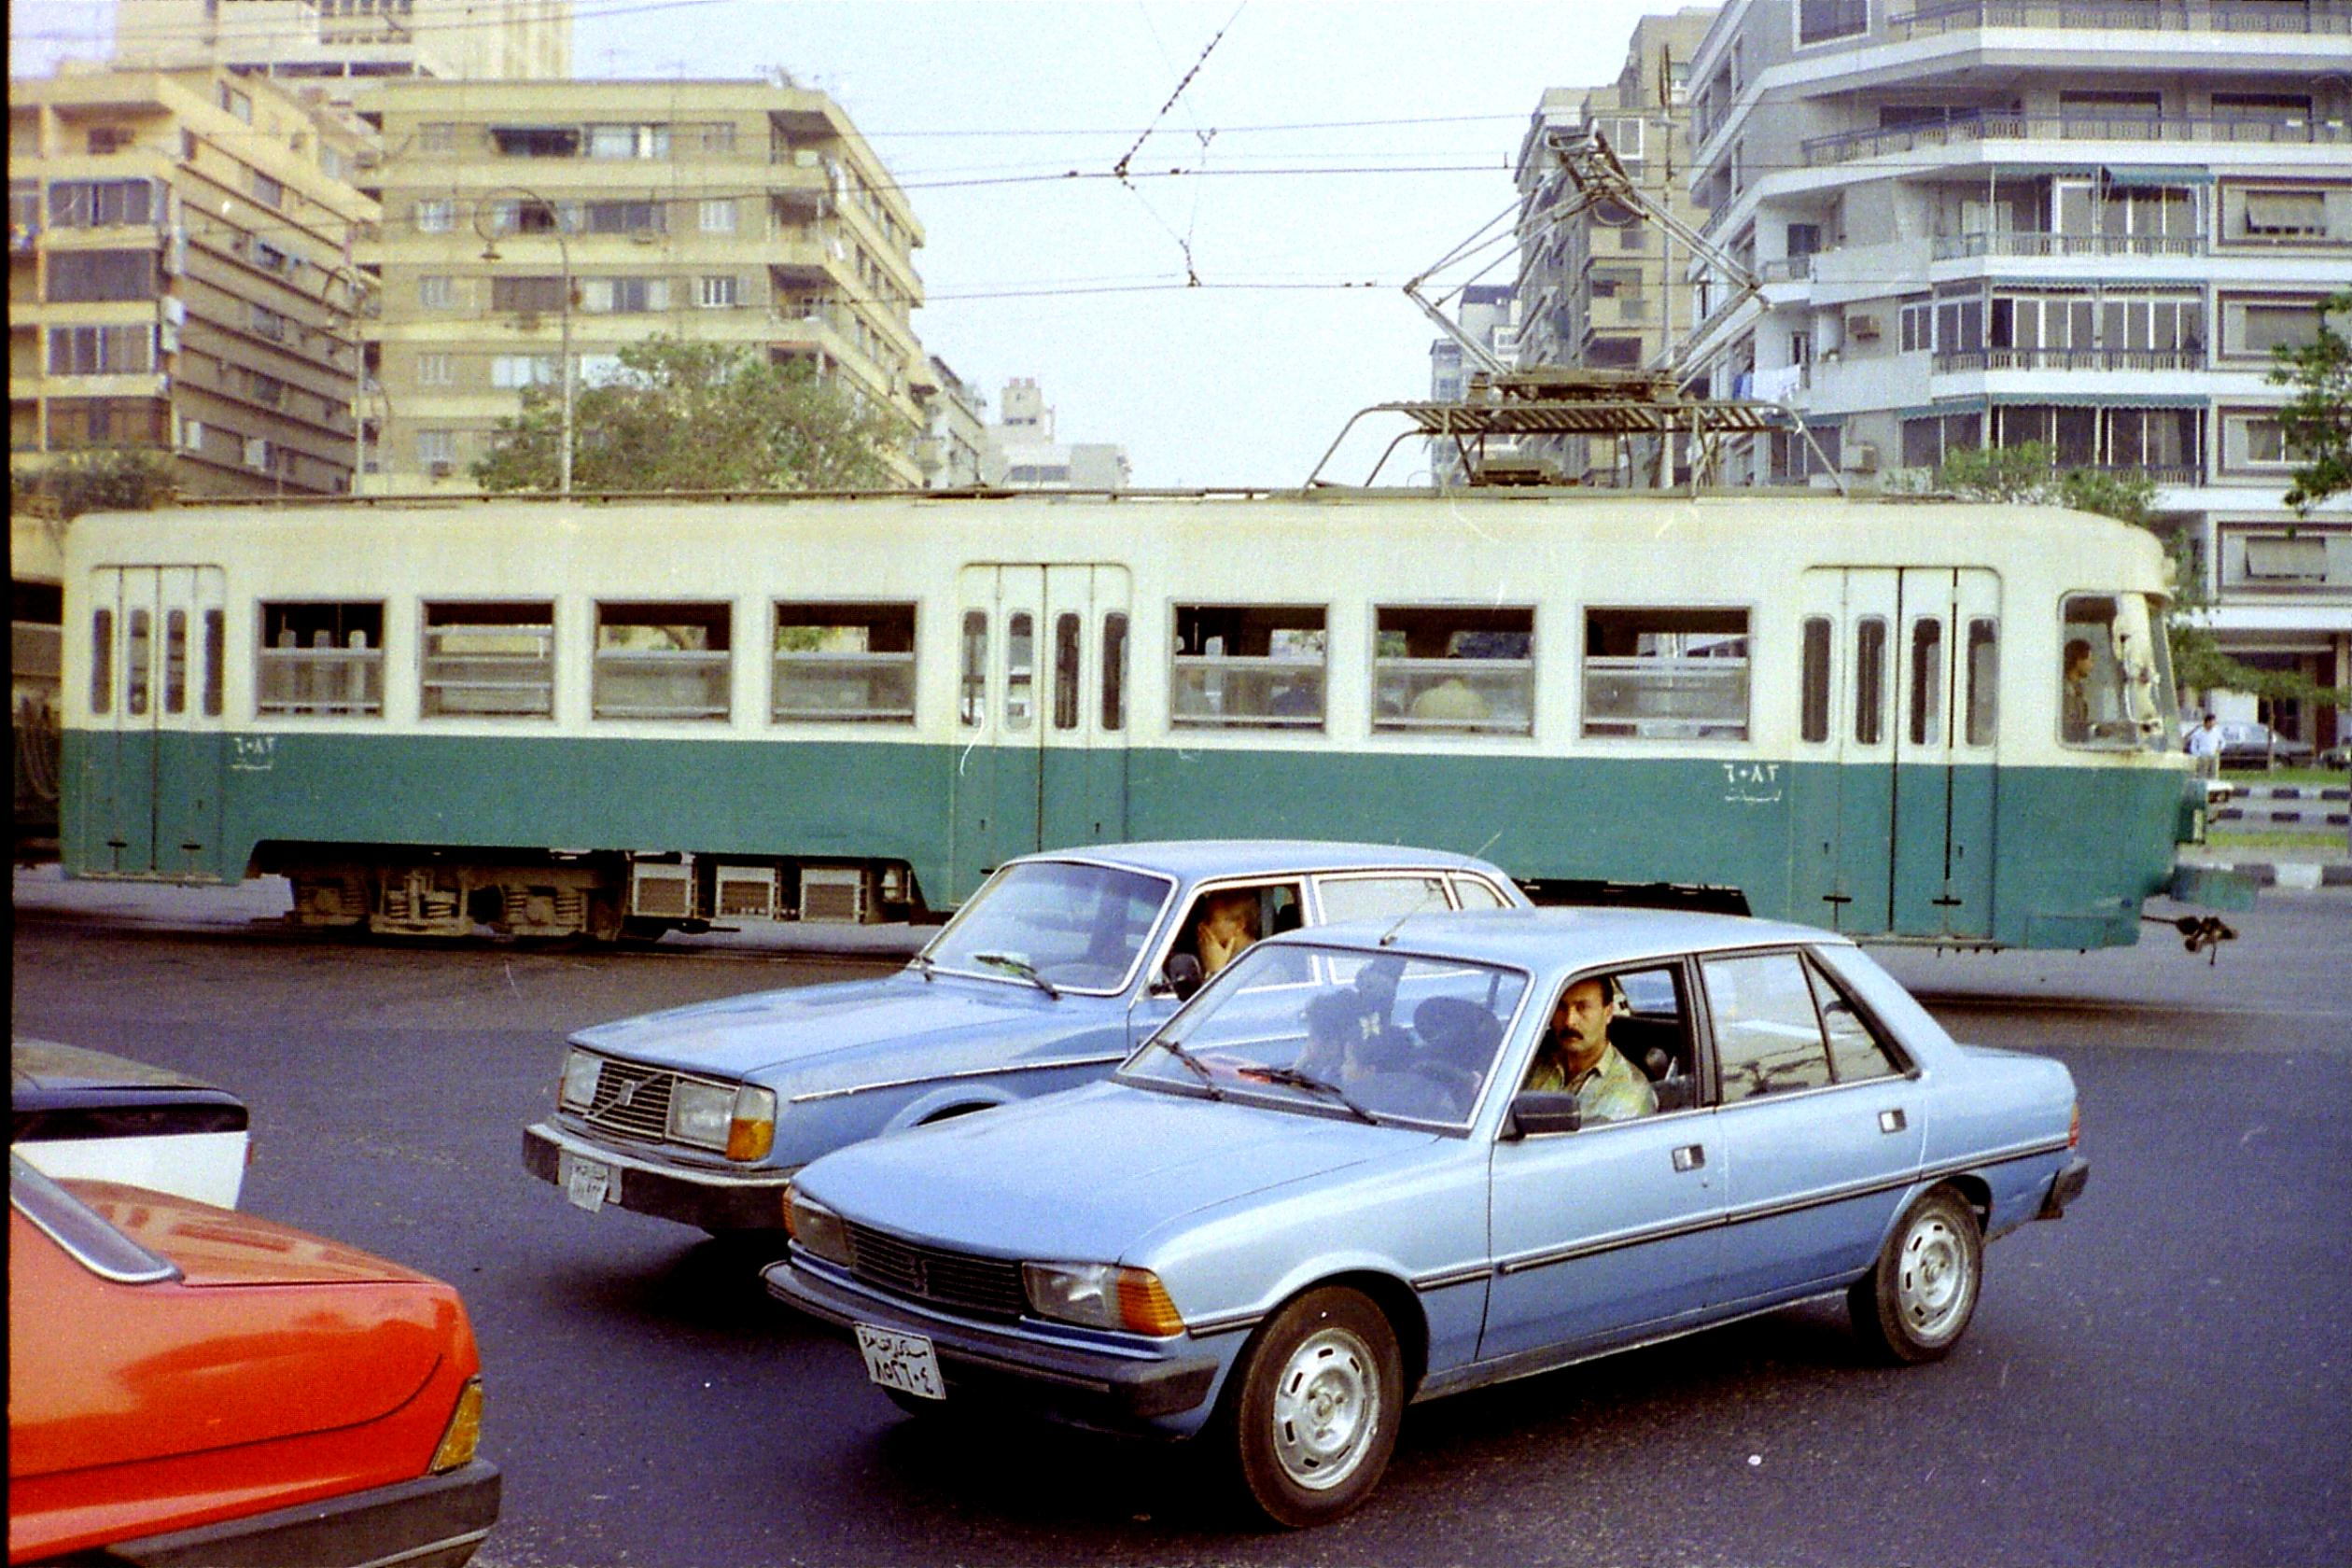 Tram-Cairo-We-Are-Railfans-Cars